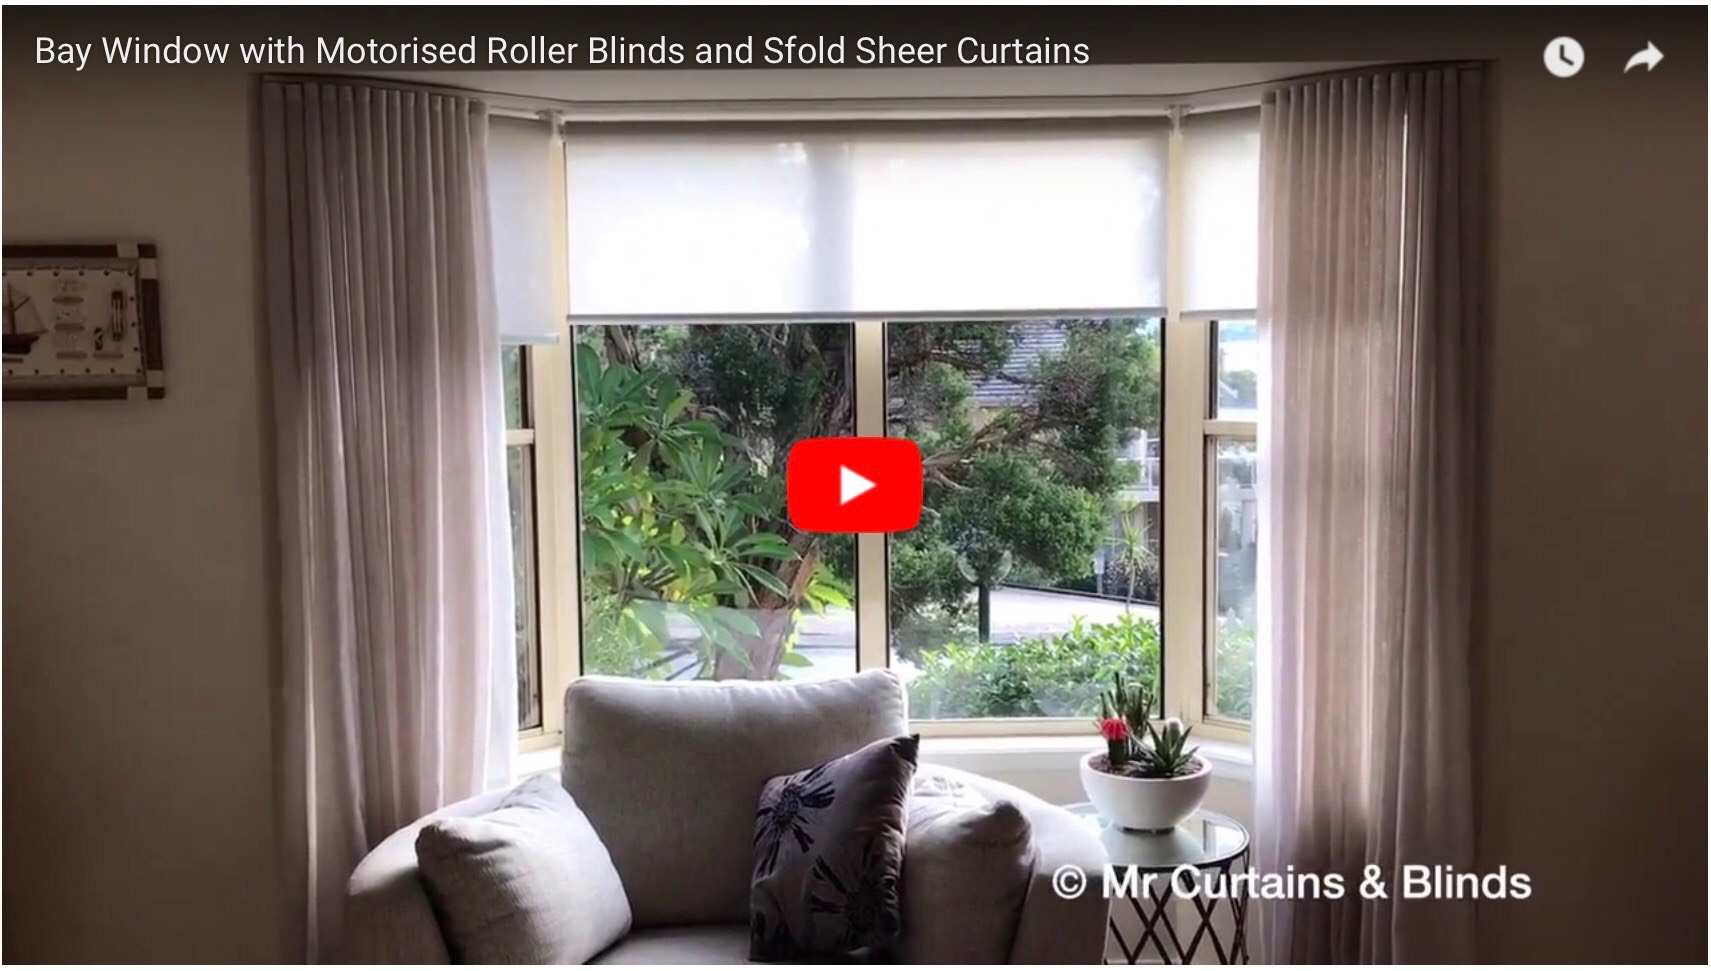 Motorised roller blinds in a bay window with sfold sheer curtains